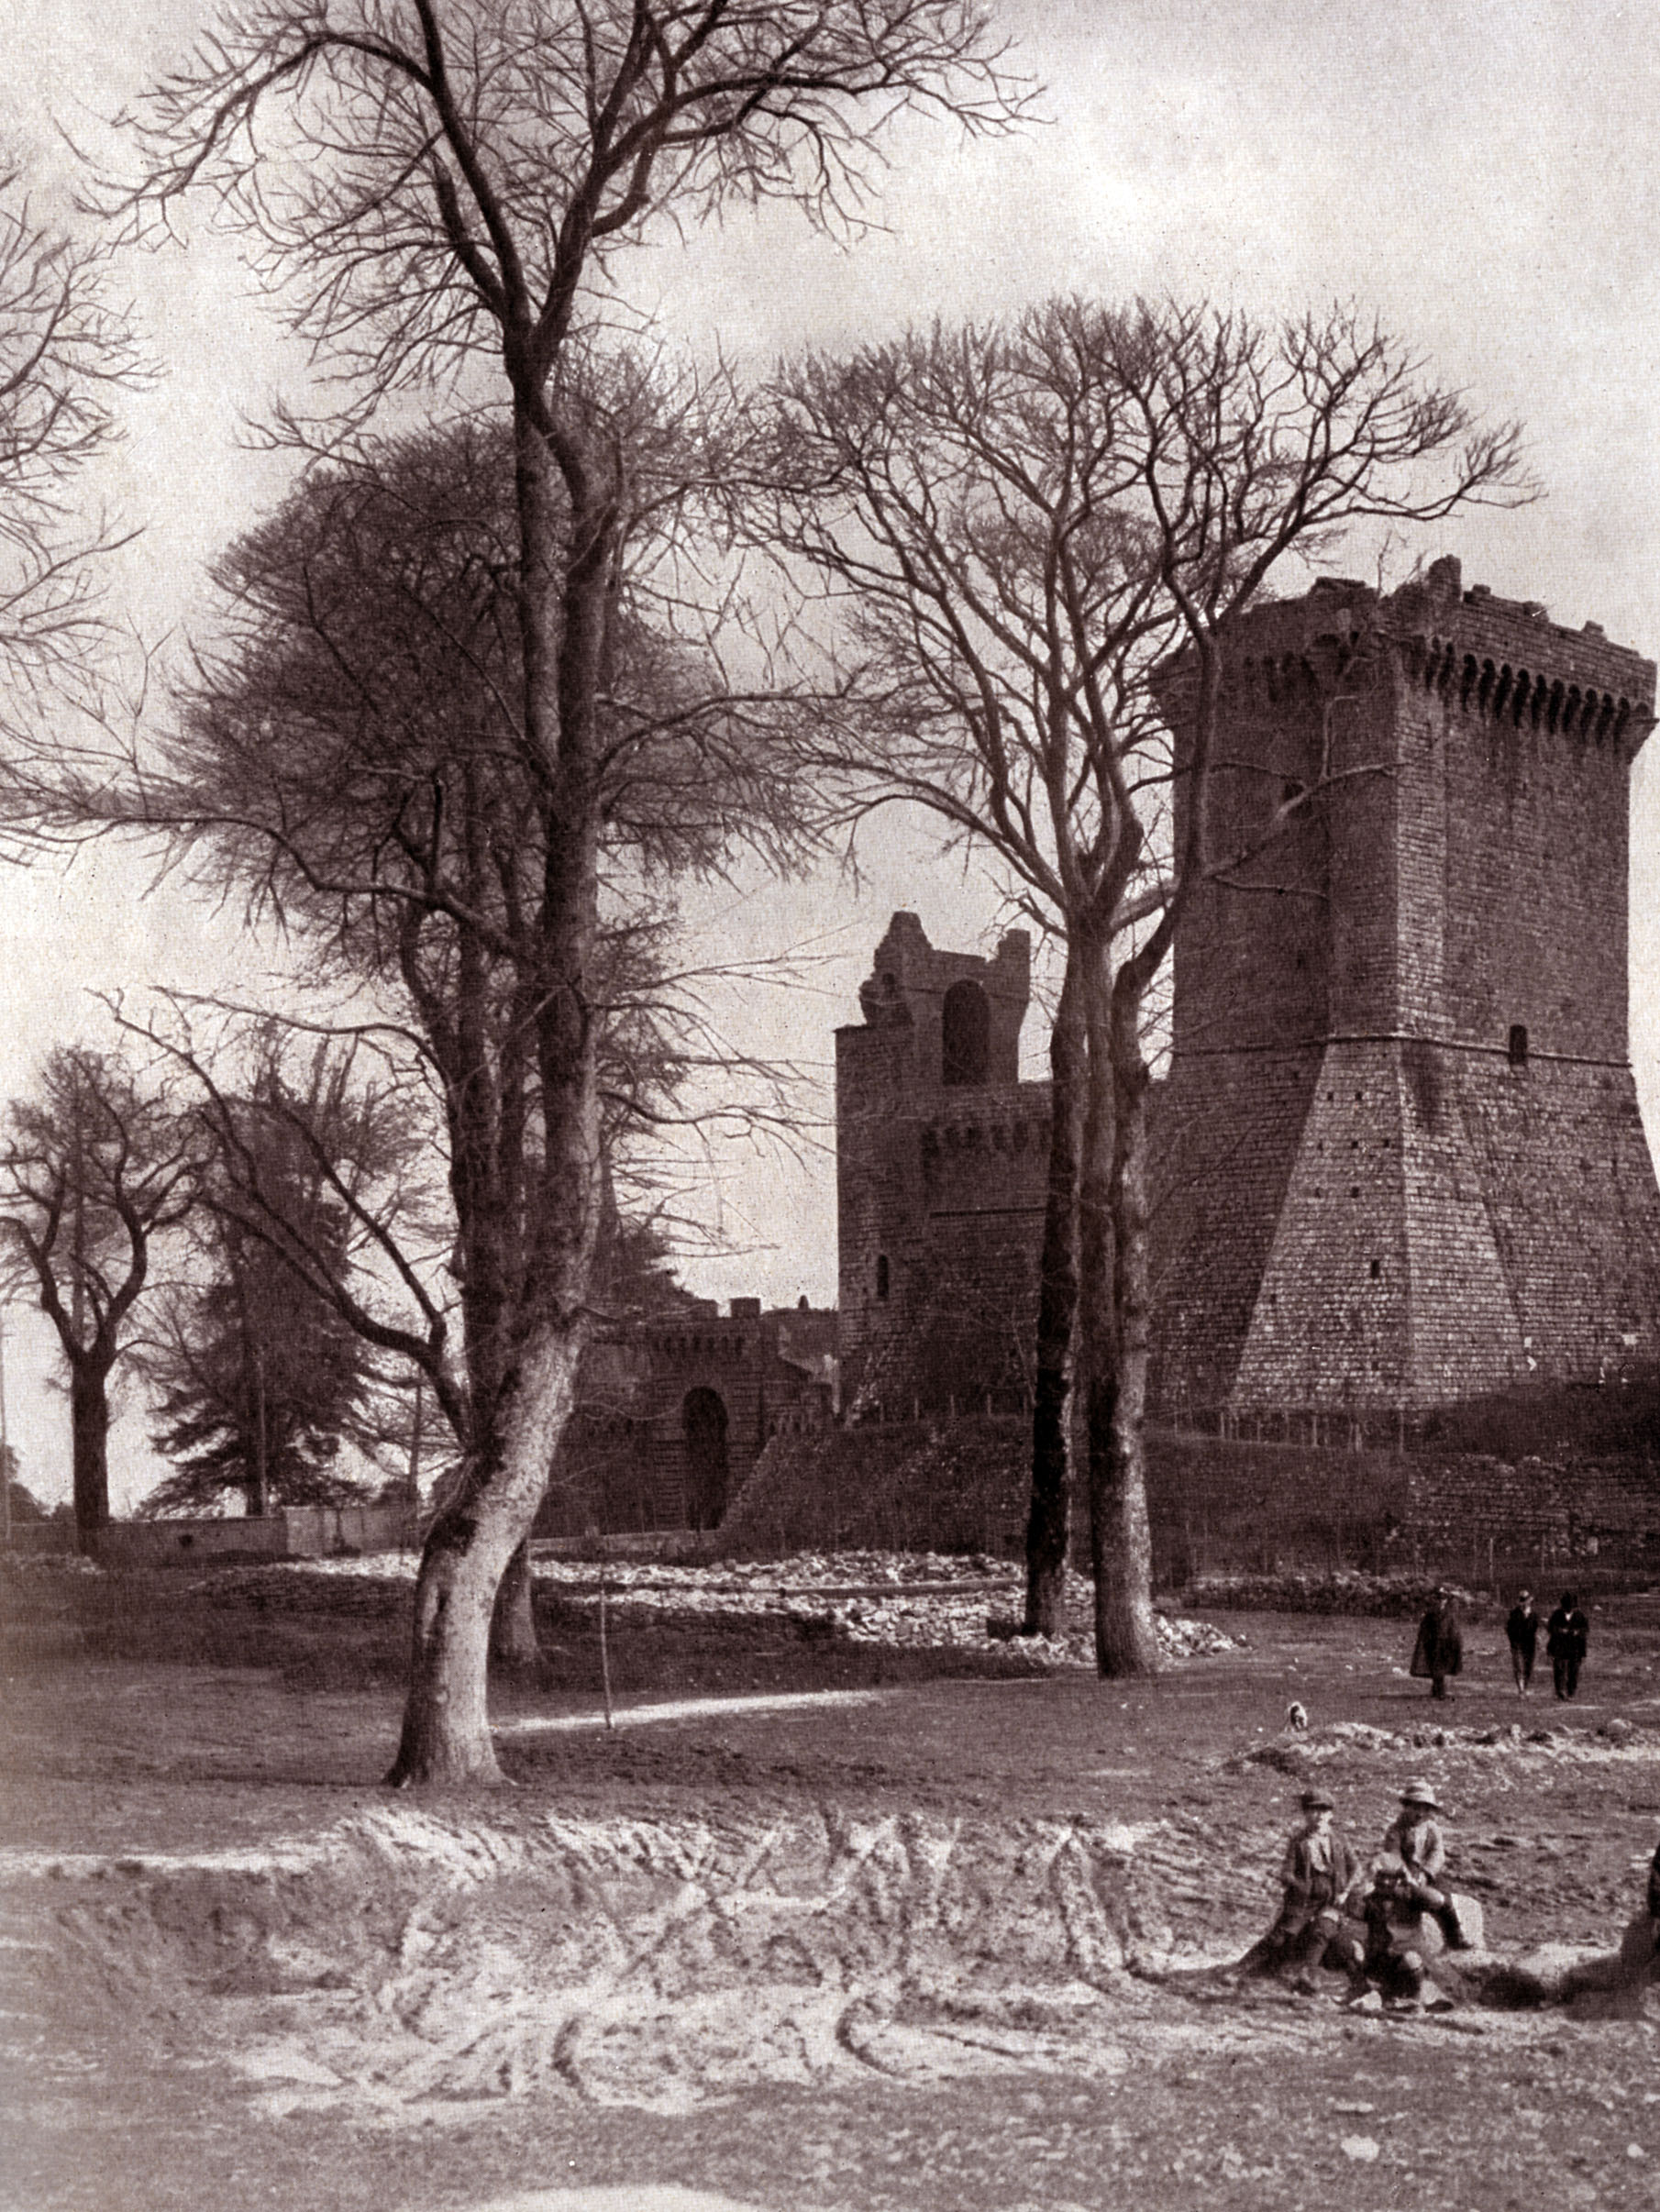 Piancastagnaio, la Rocca in the 1930's